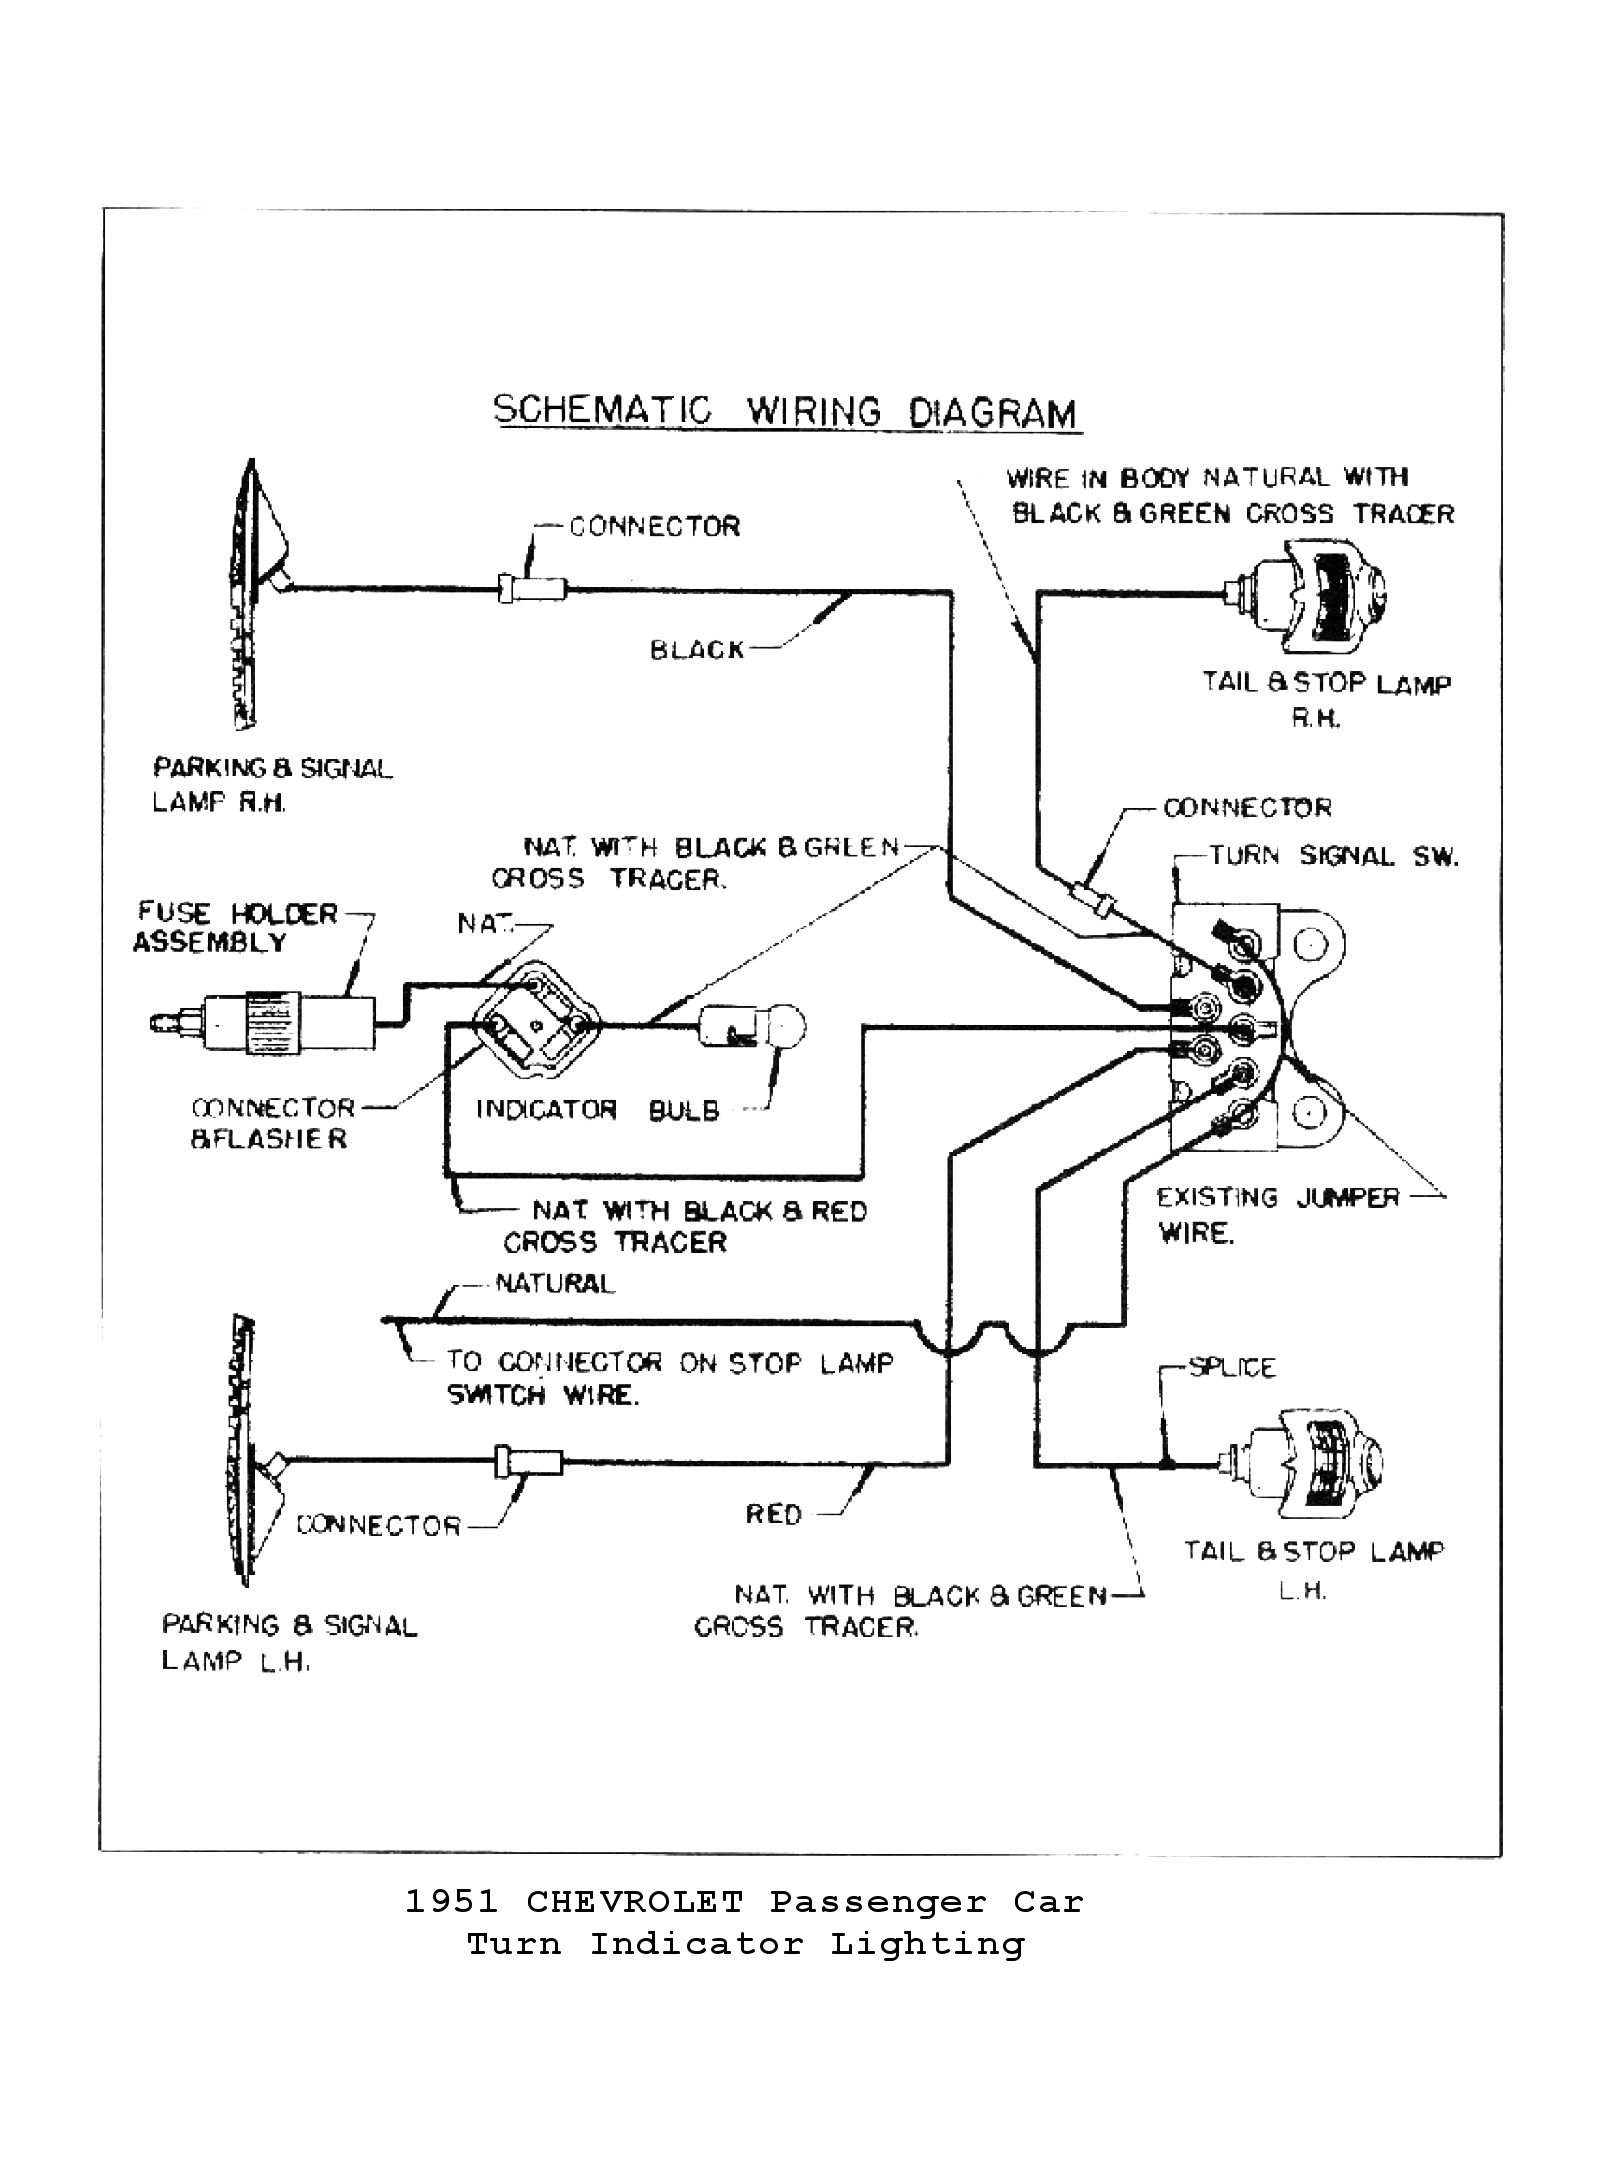 5152turnsignals chevy wiring diagrams Chevy Truck Wiring Diagram at bayanpartner.co